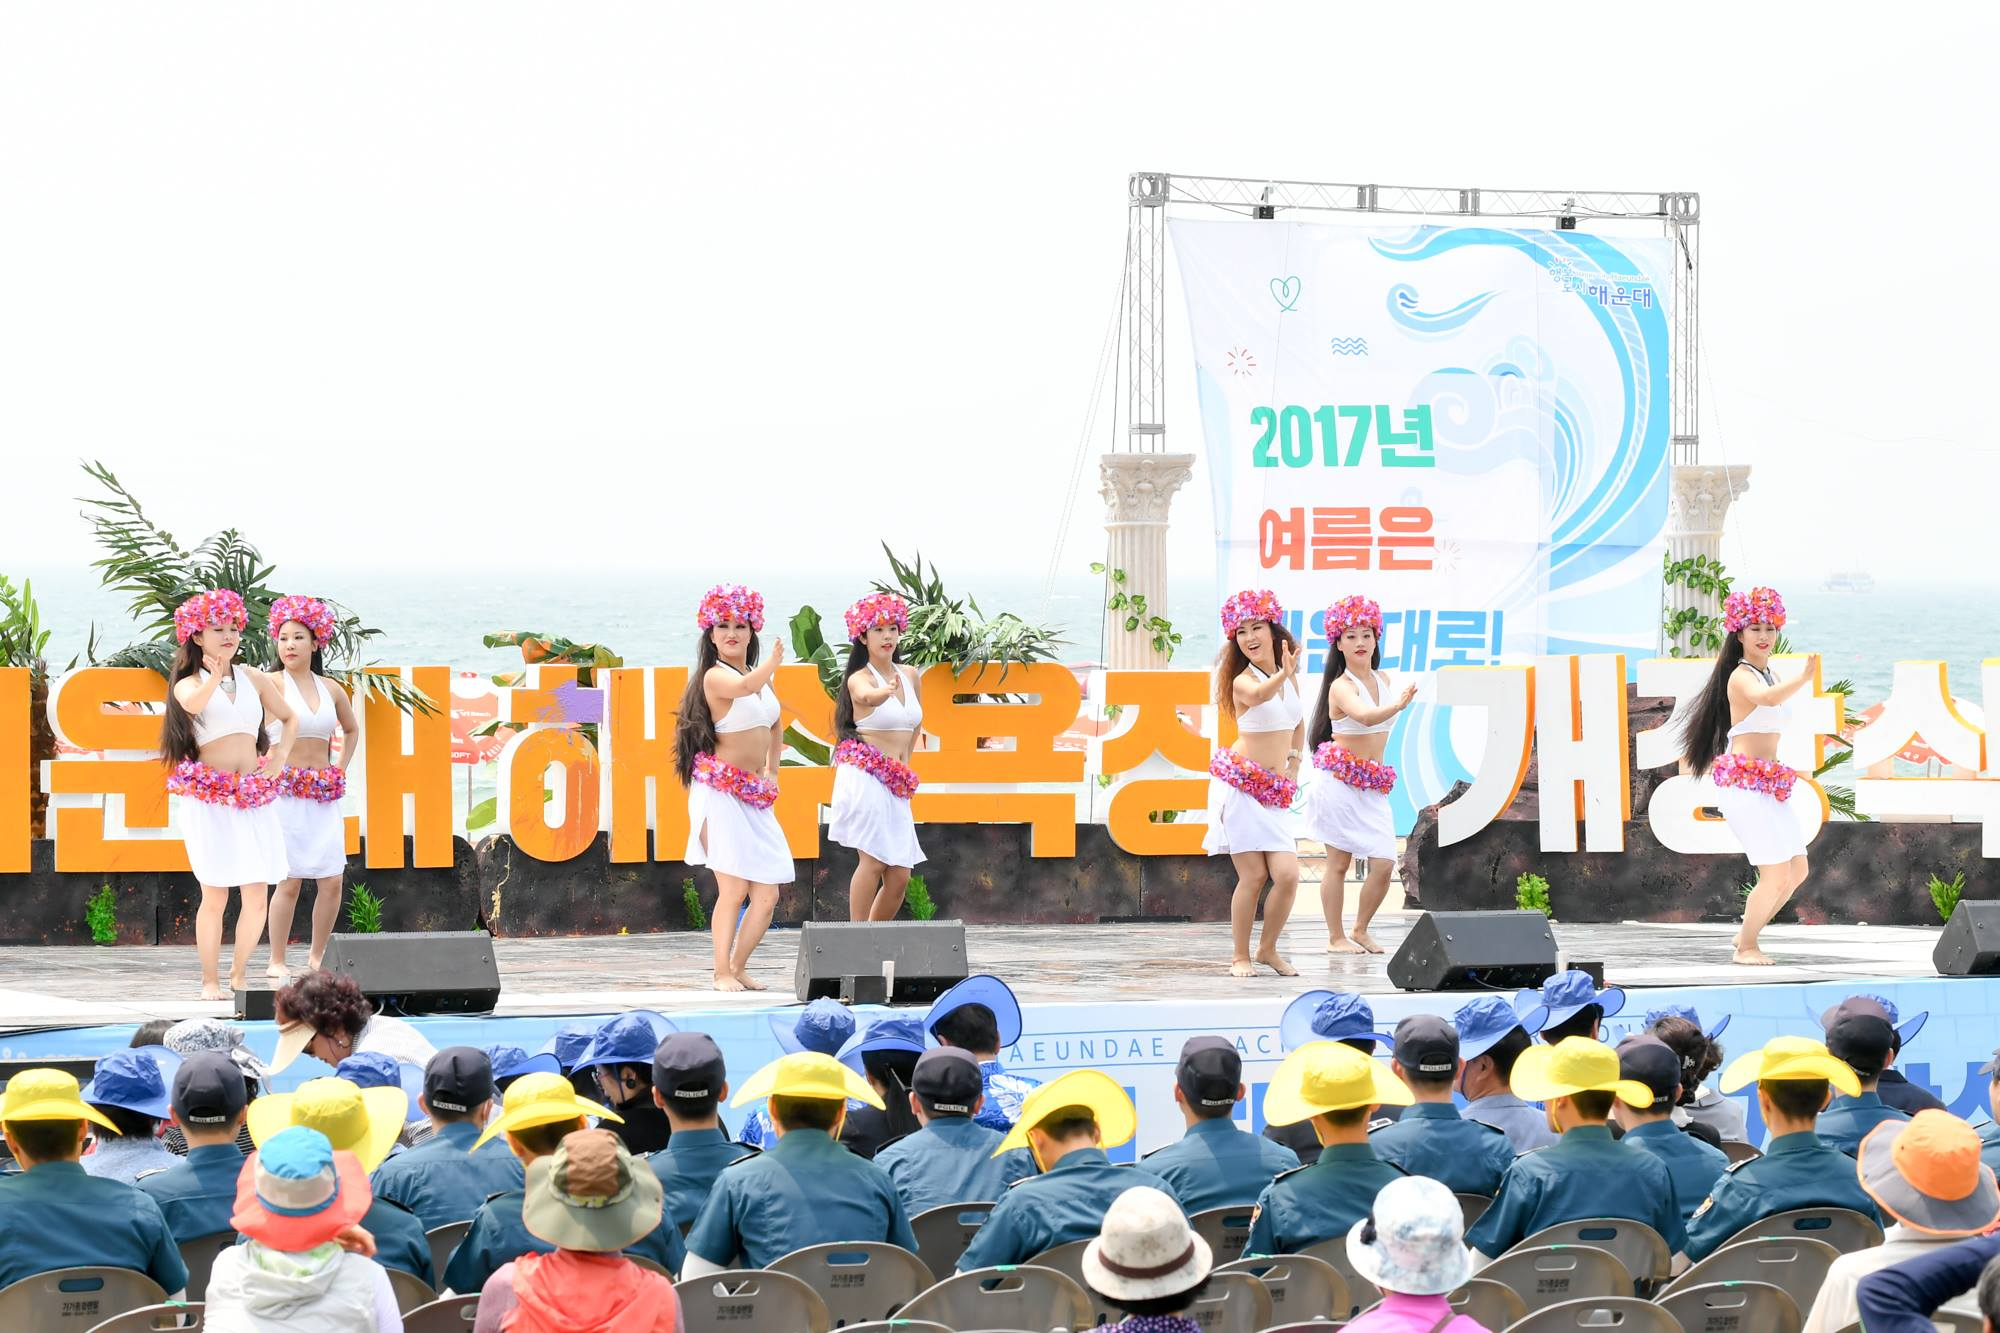 Foto by: what to do in busan for 2 days blog.